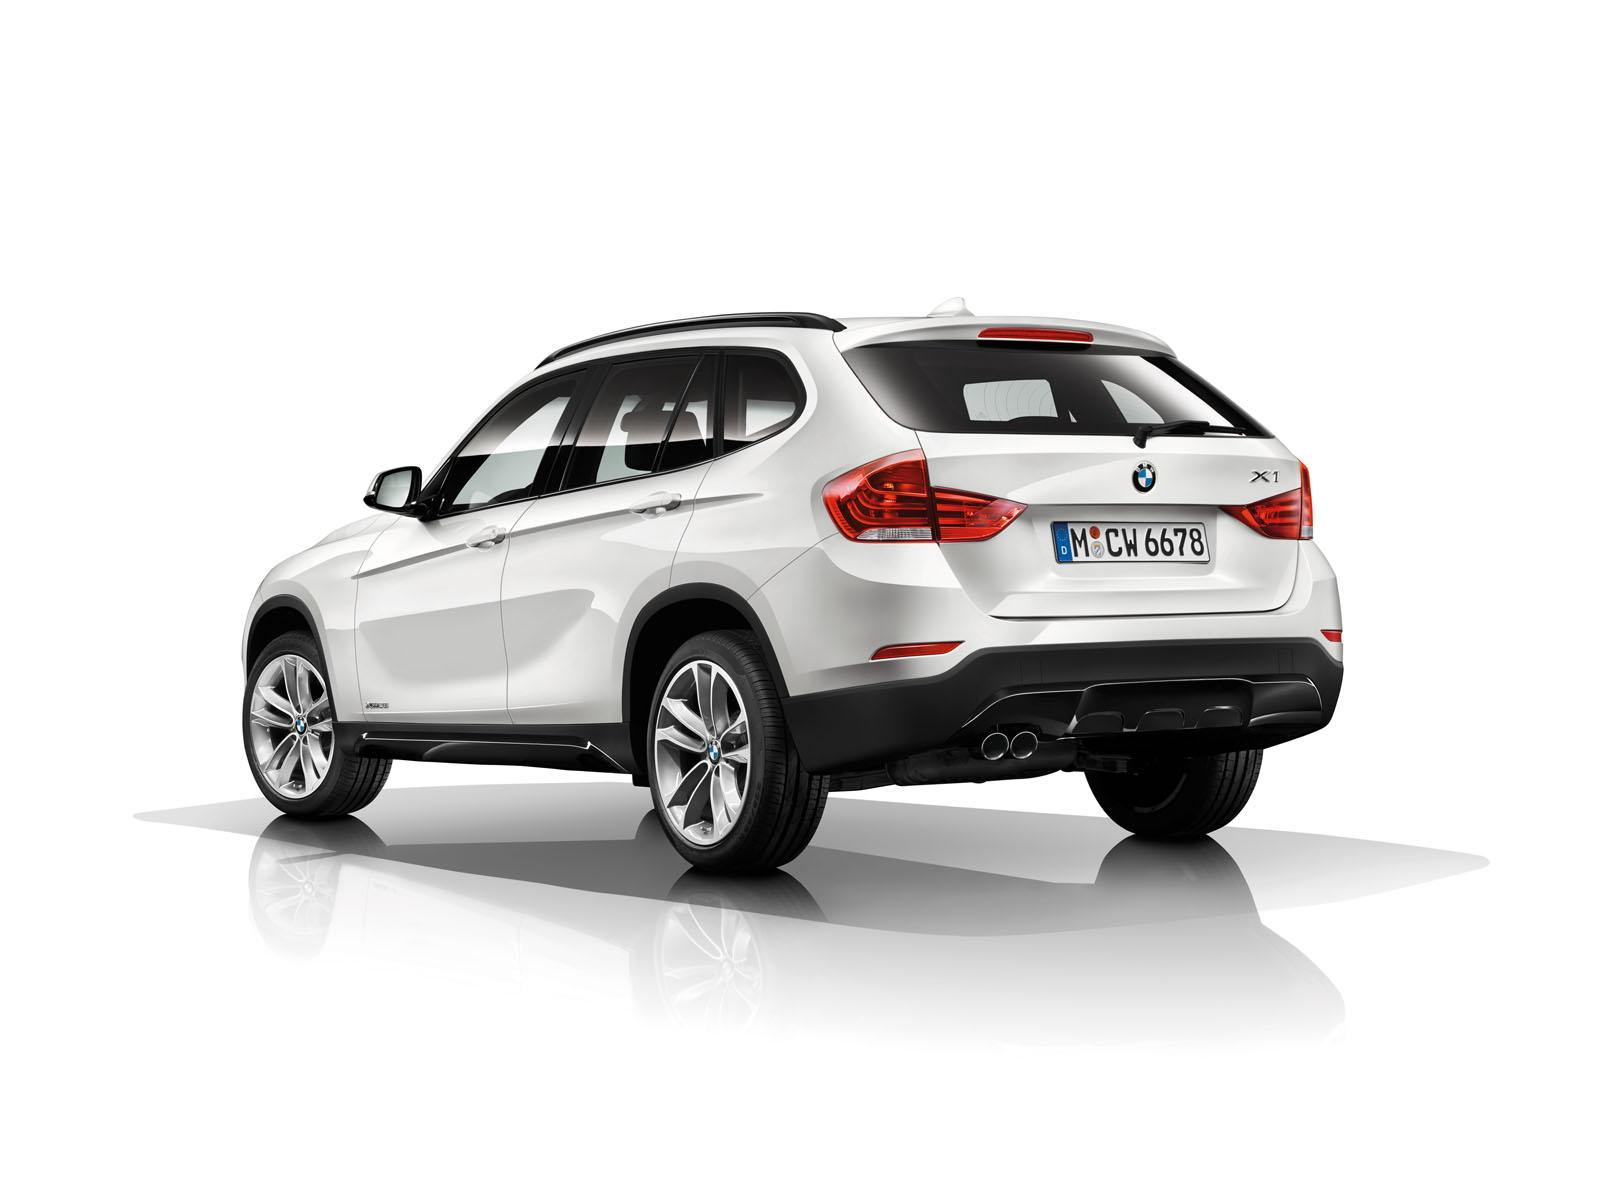 Updated Bmw X1 Announced For The Detroit Motor Show